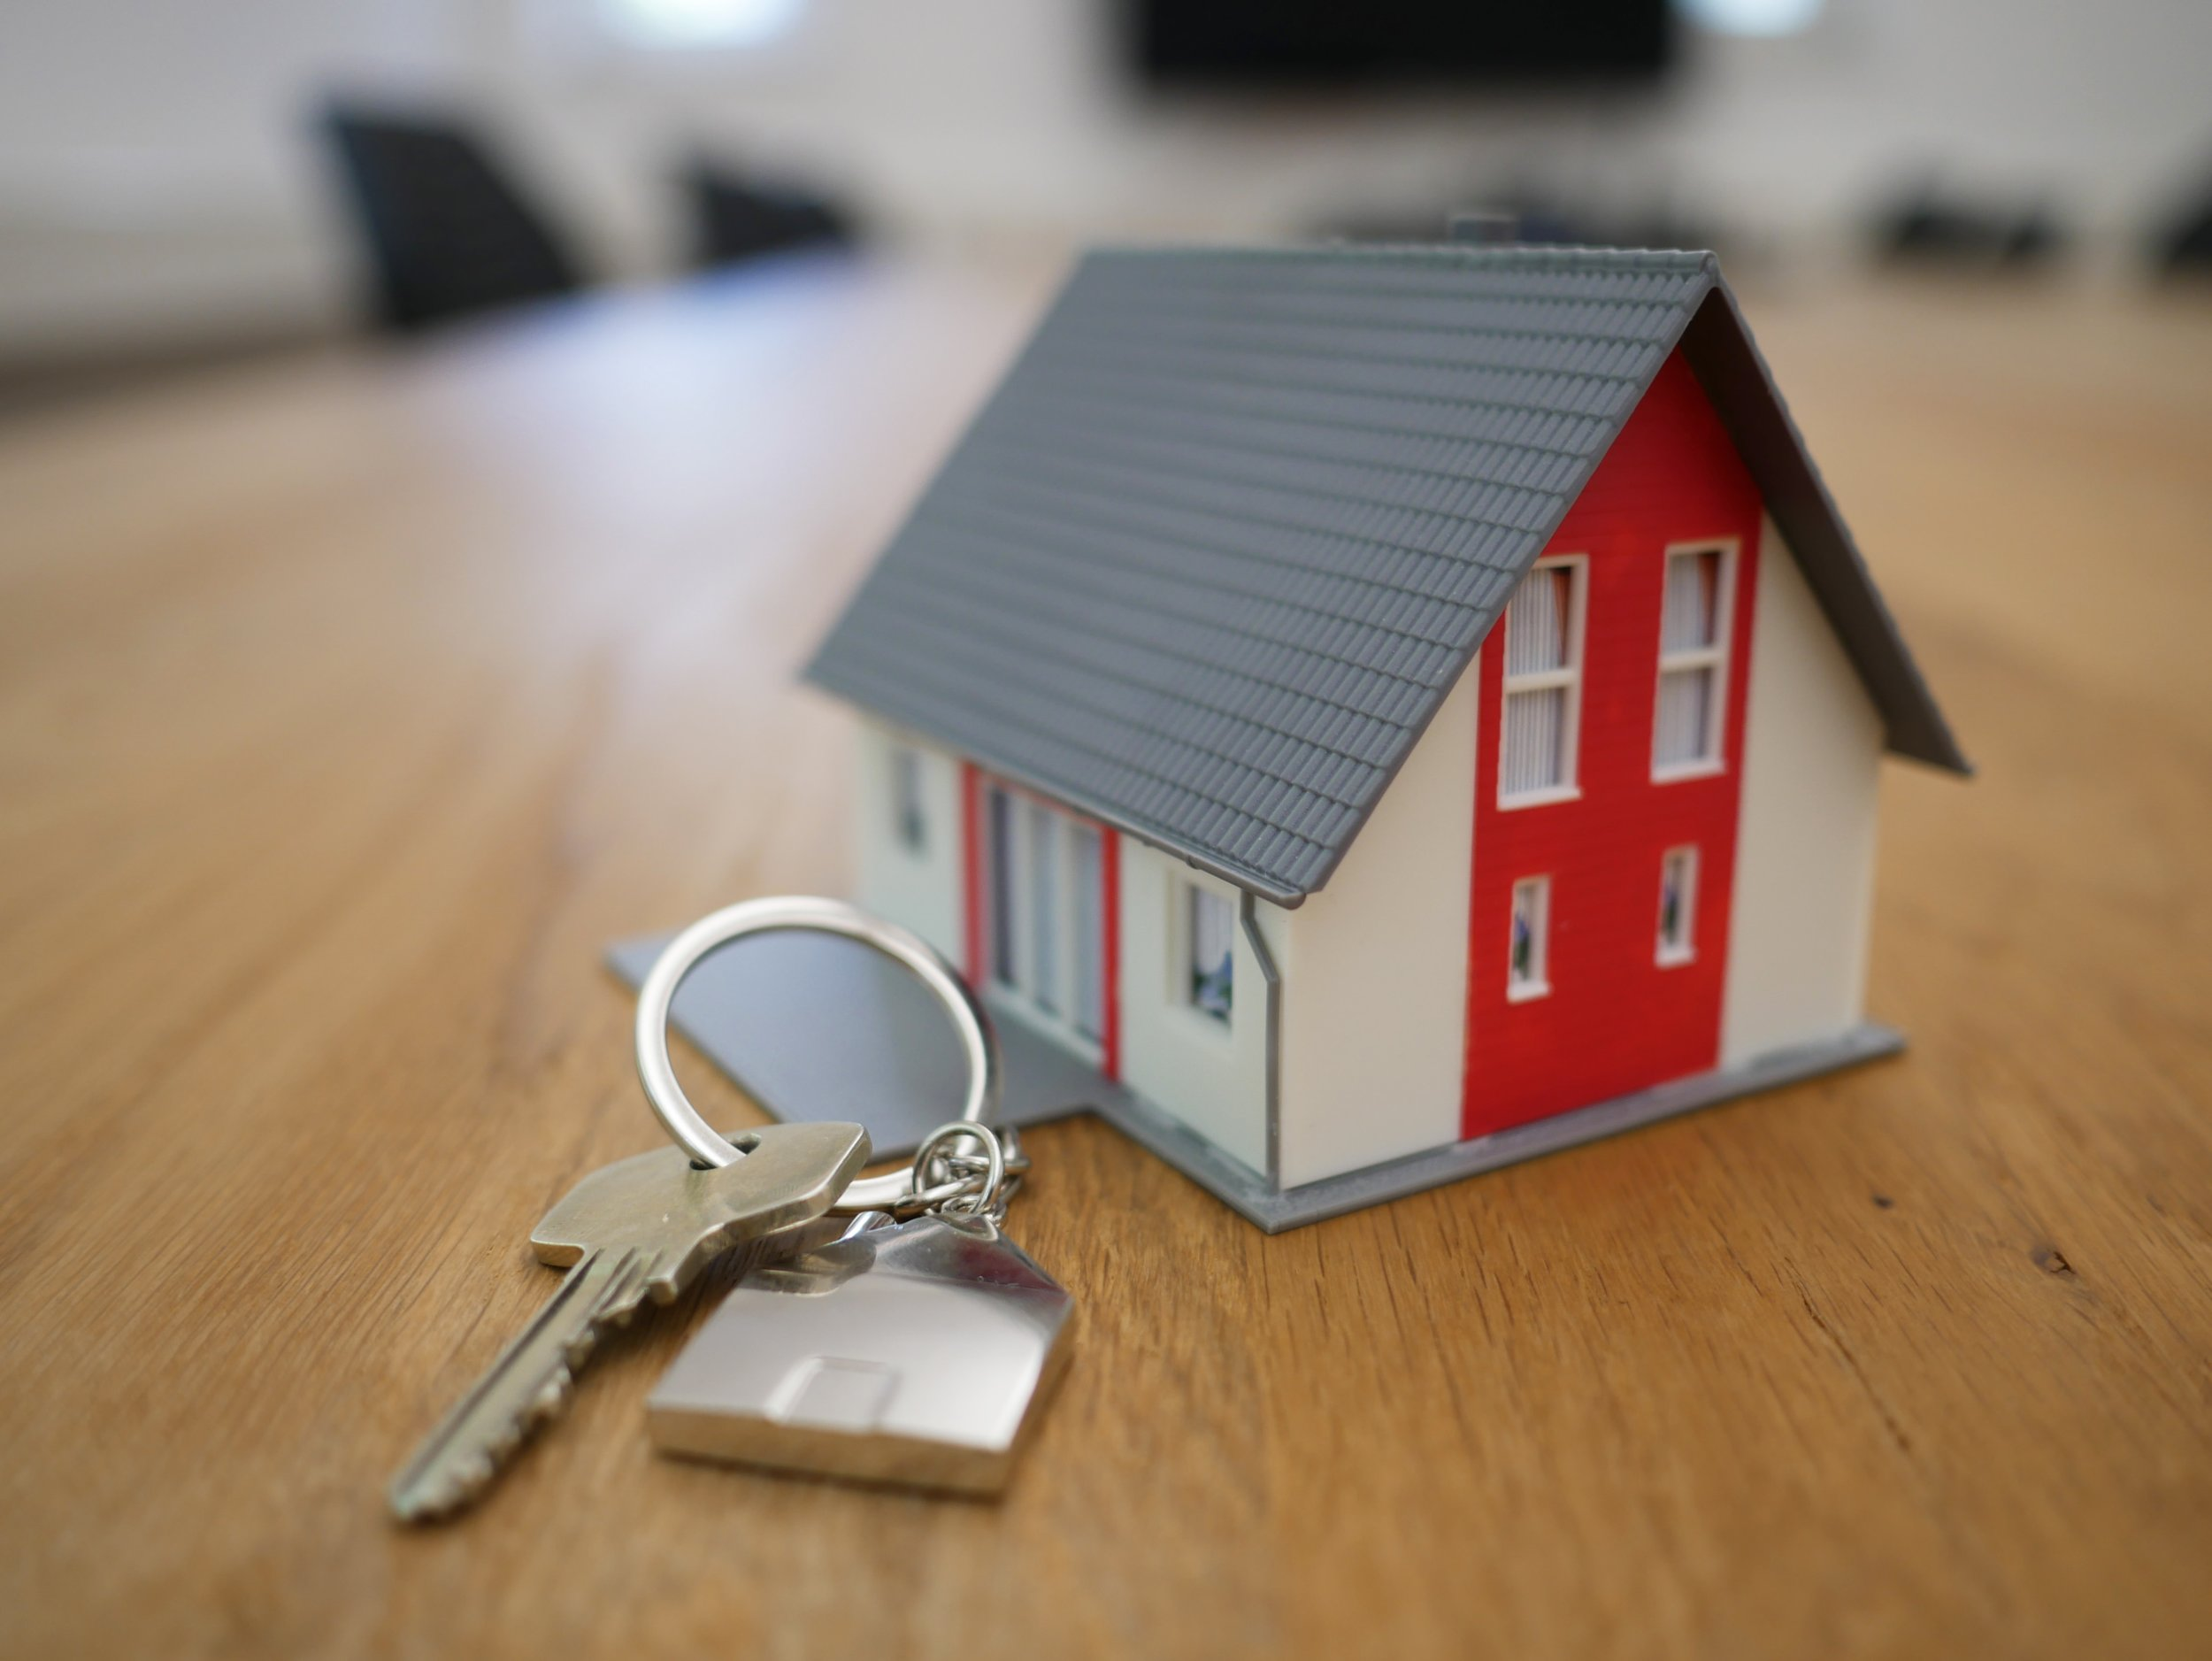 eminent-domain-law-attorney-relocation-benefits-lawyer-Minneapolis.jpg